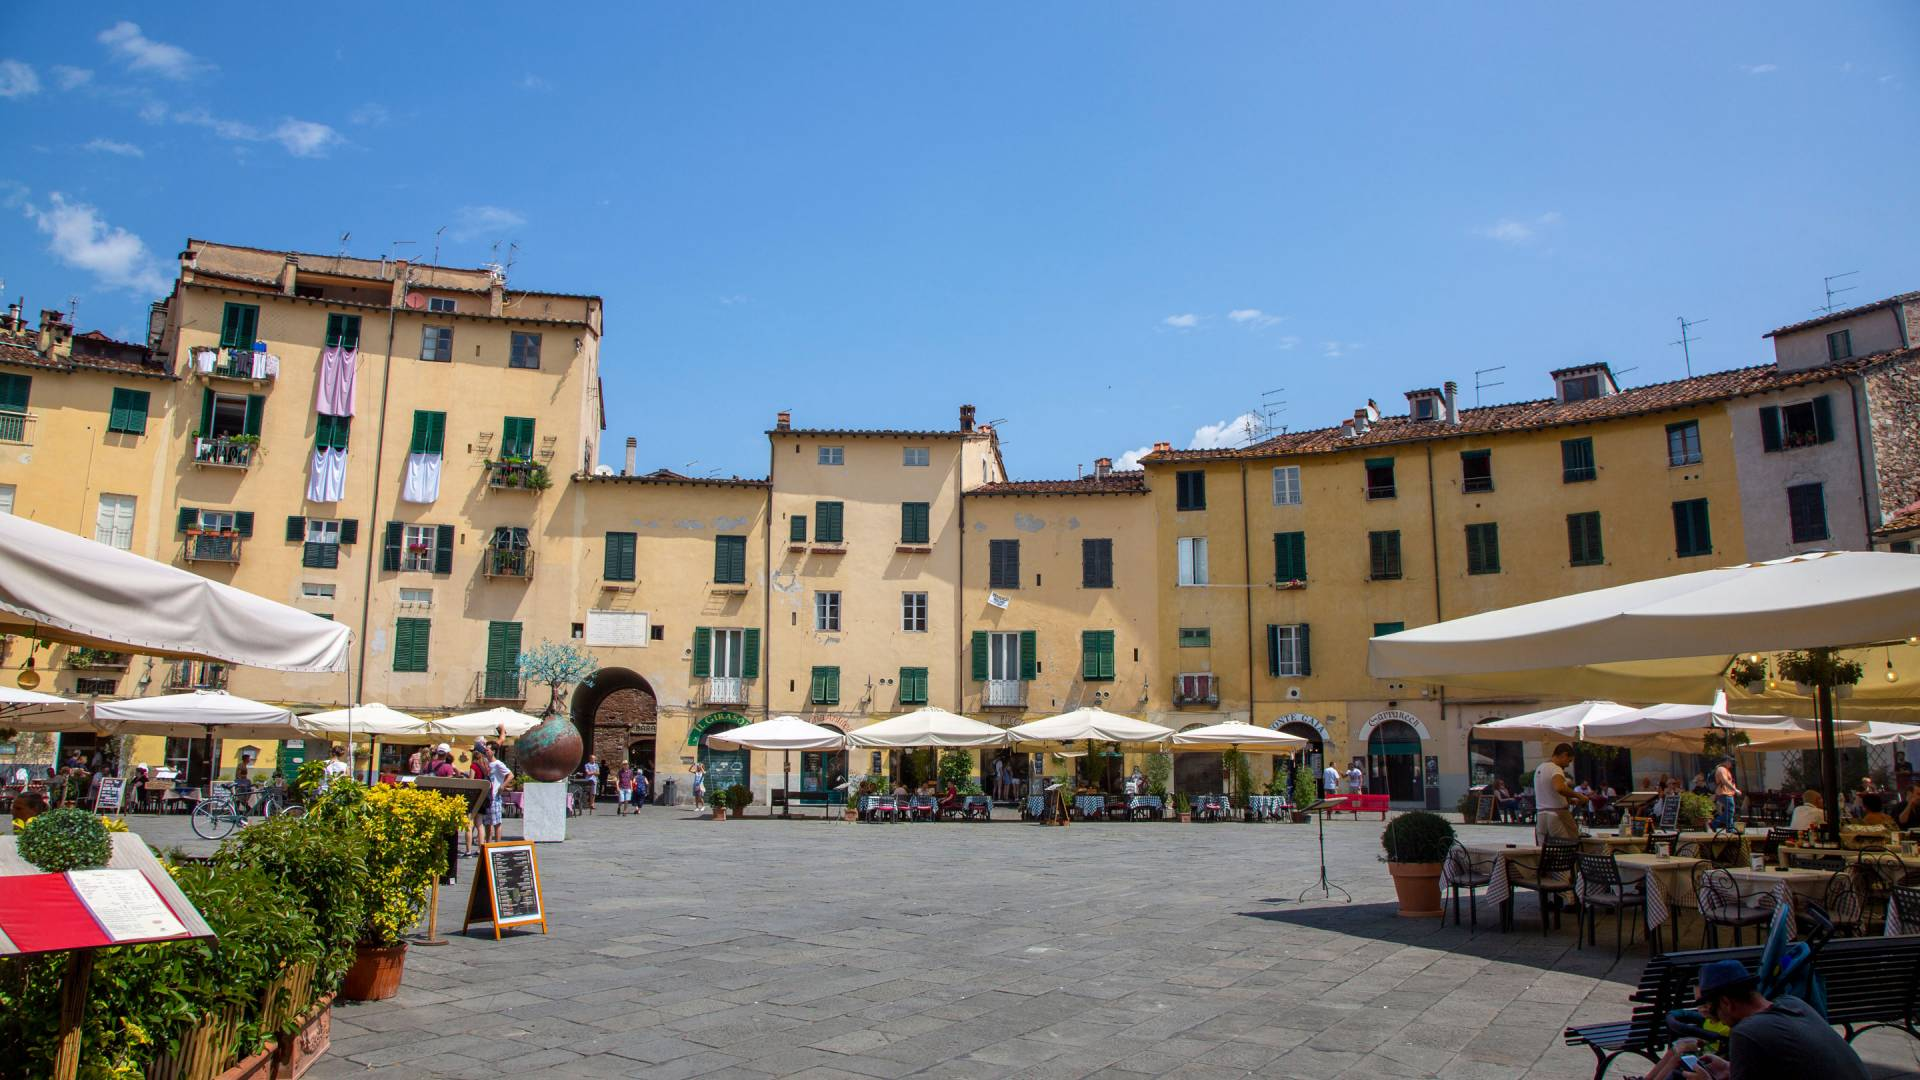 Square in Lucca surrounded by buildings